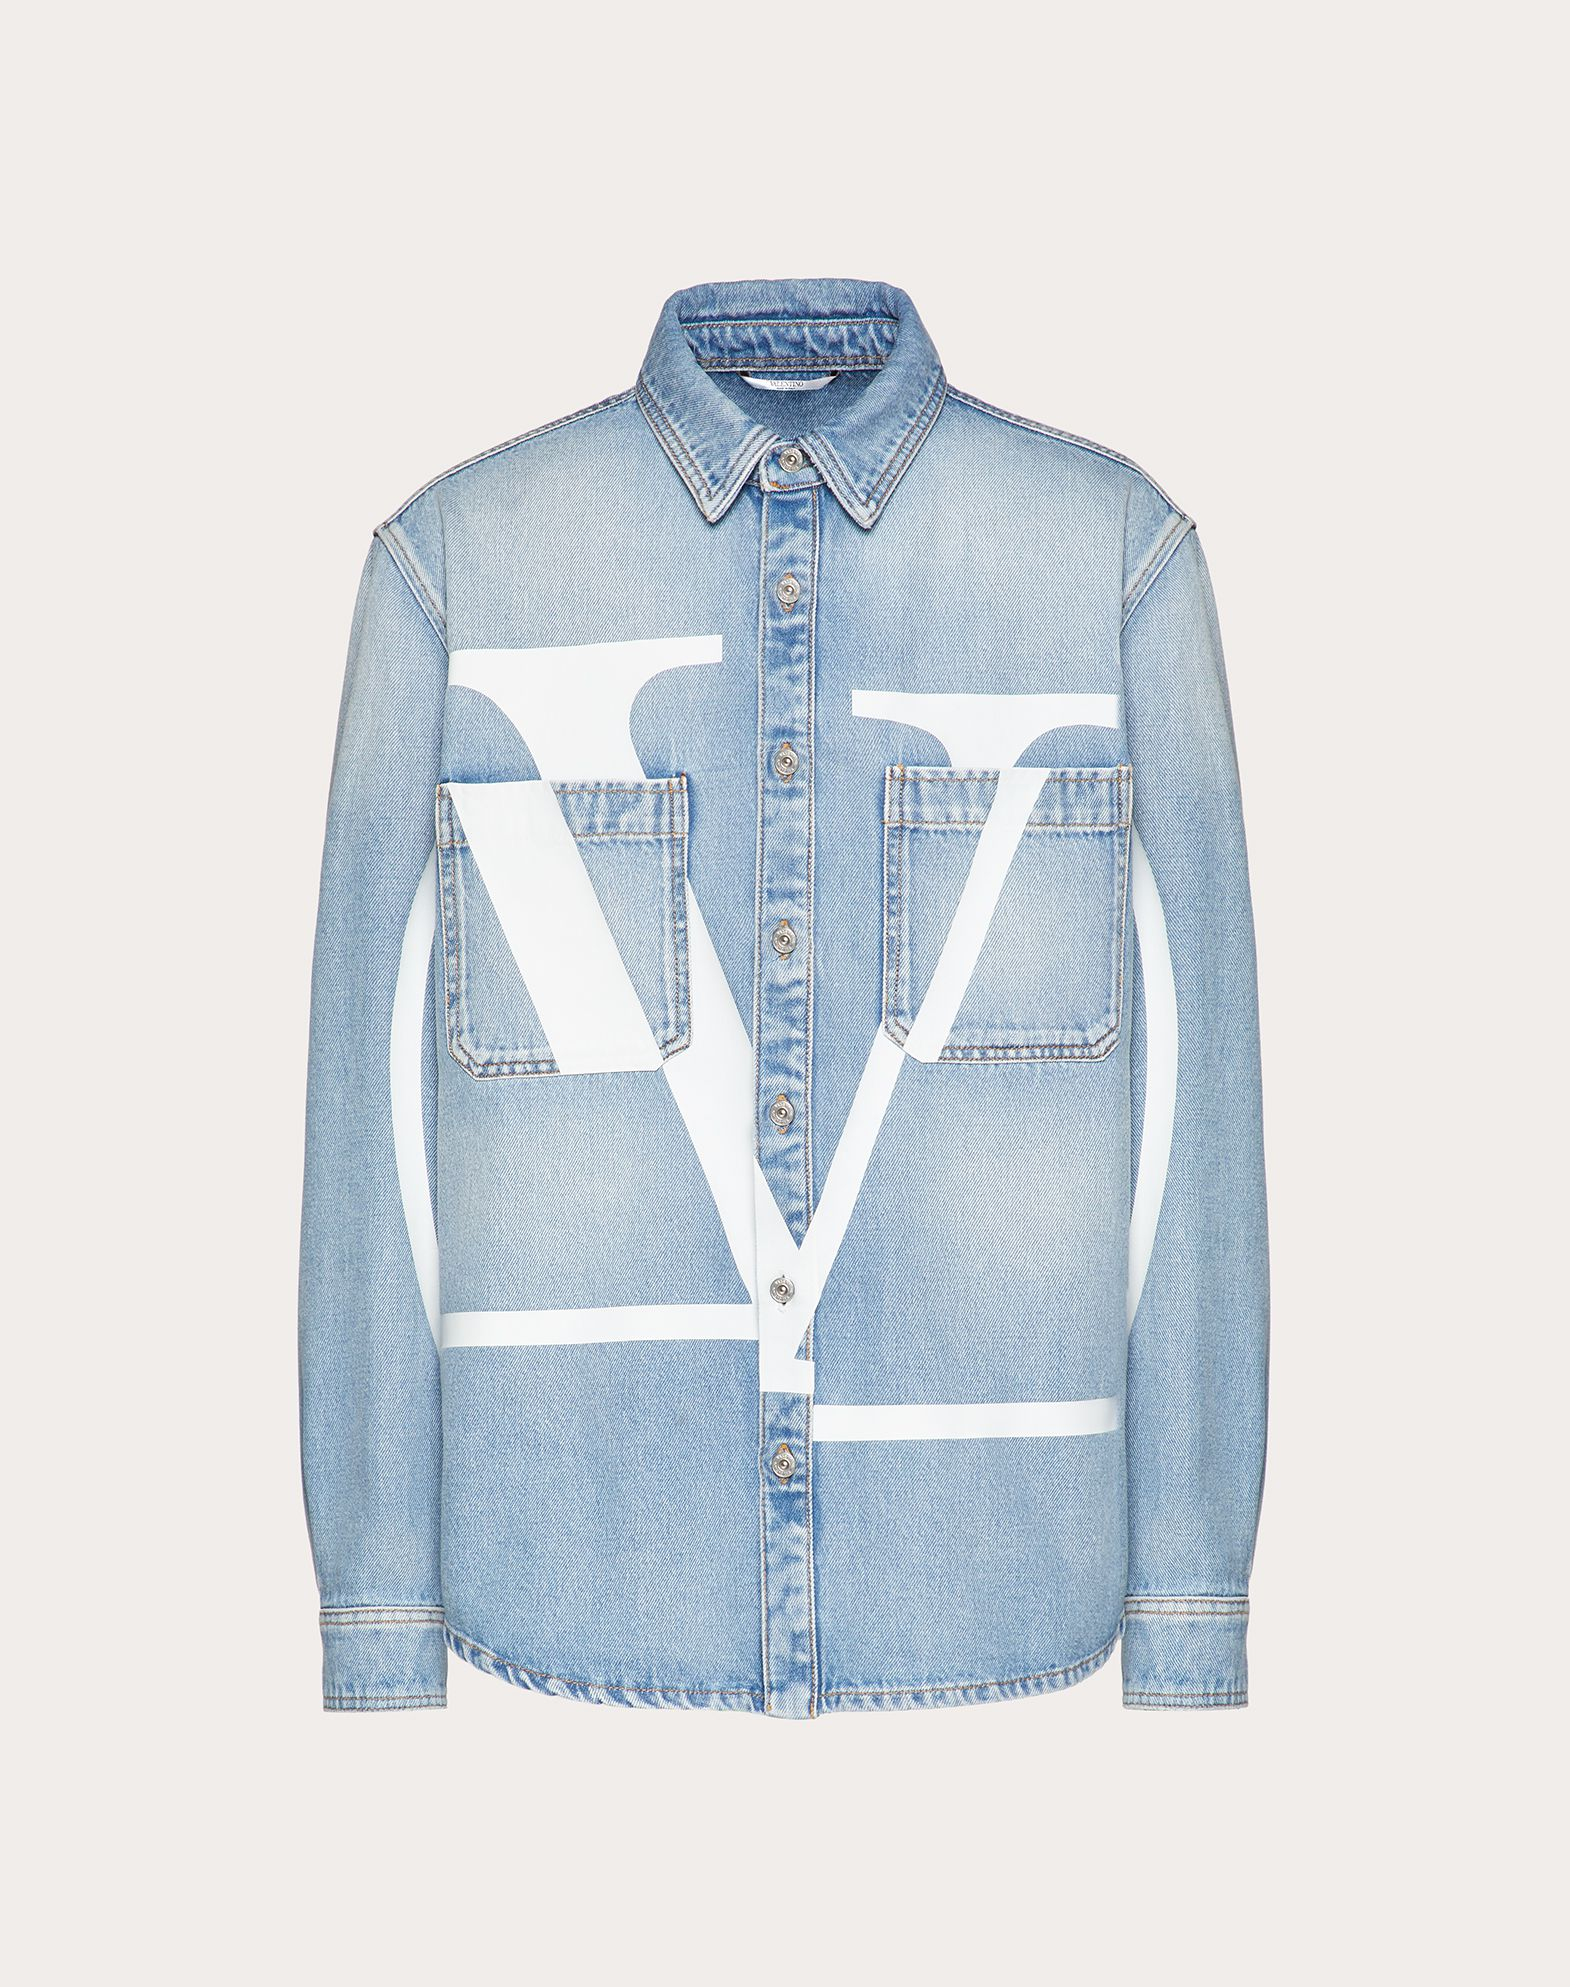 VLOGO DENIM SHIRT